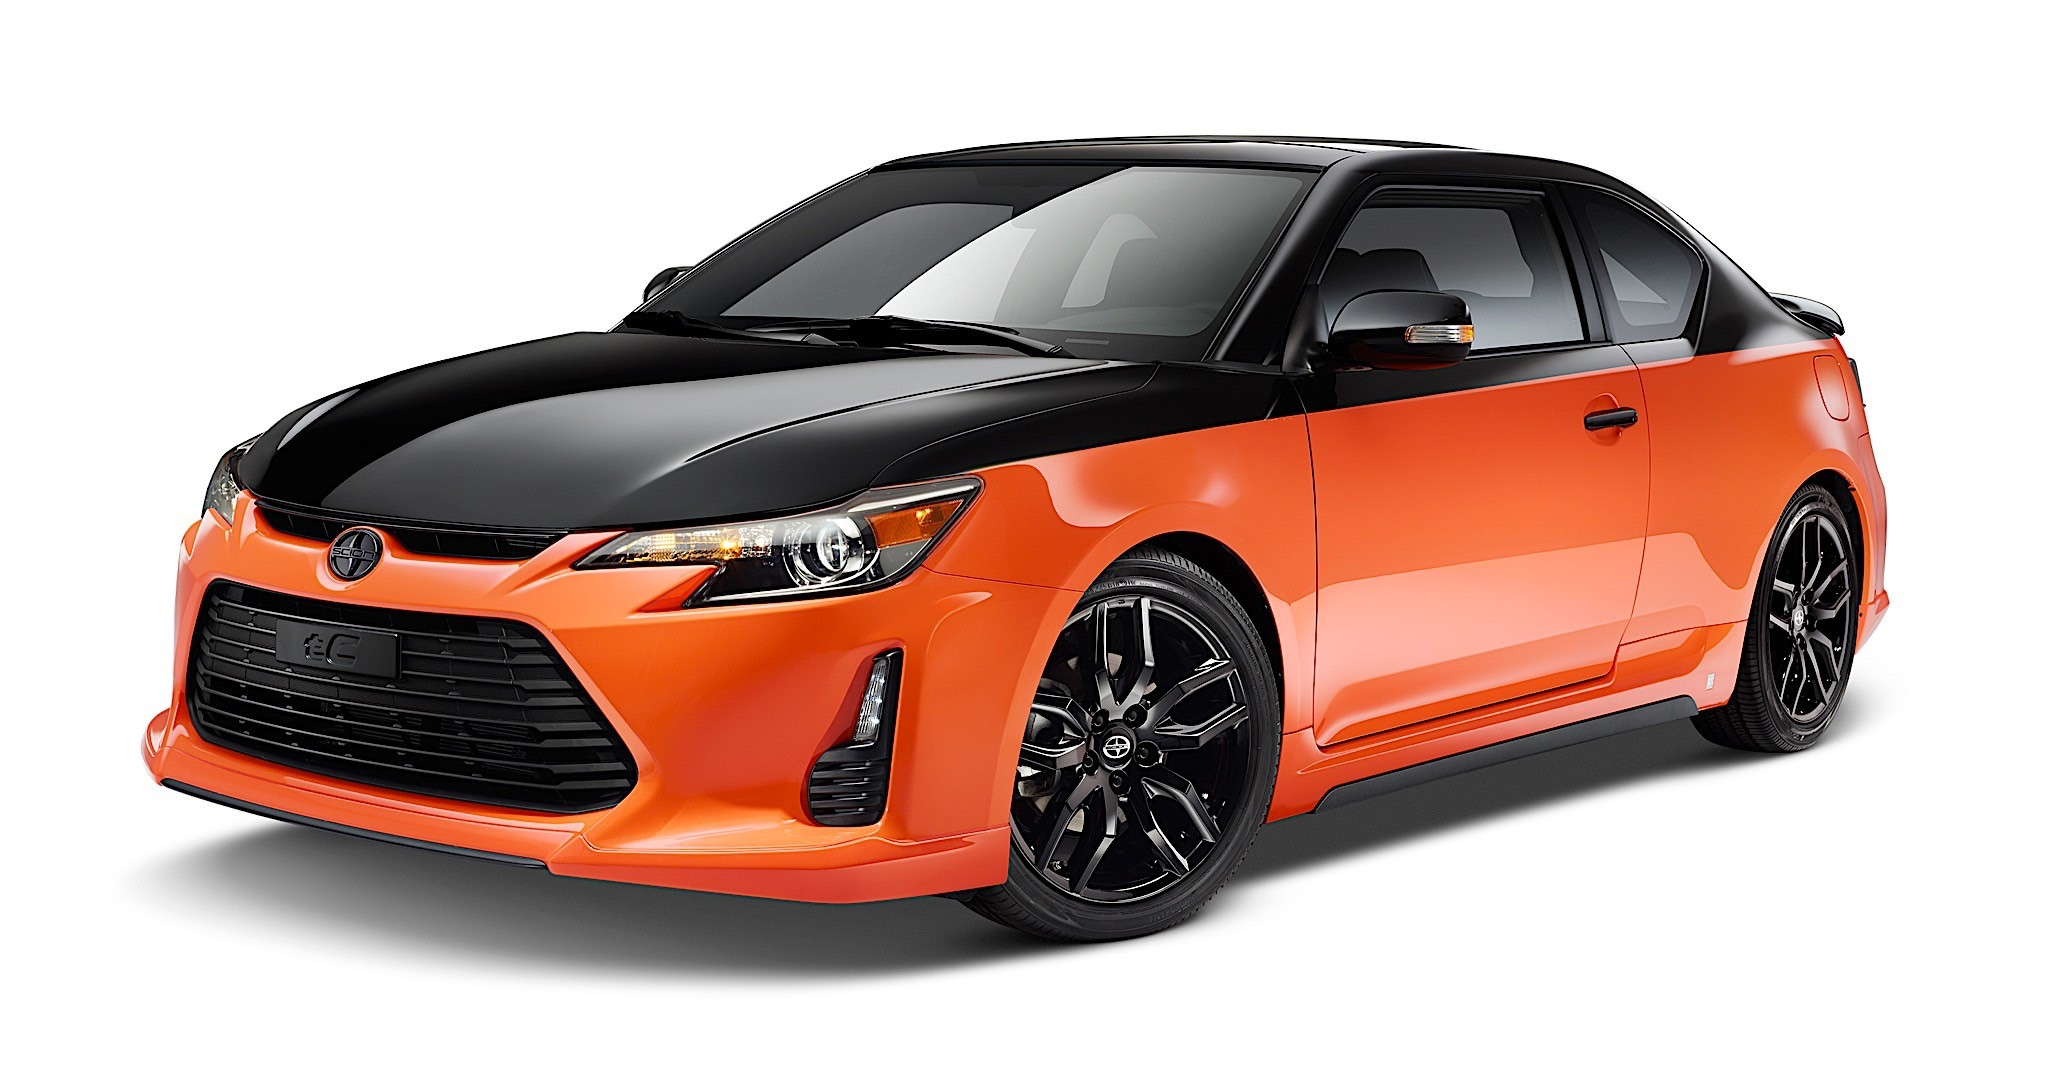 SCION tC - 2013, 2014, 2015, 2016, 2017 - autoevolution